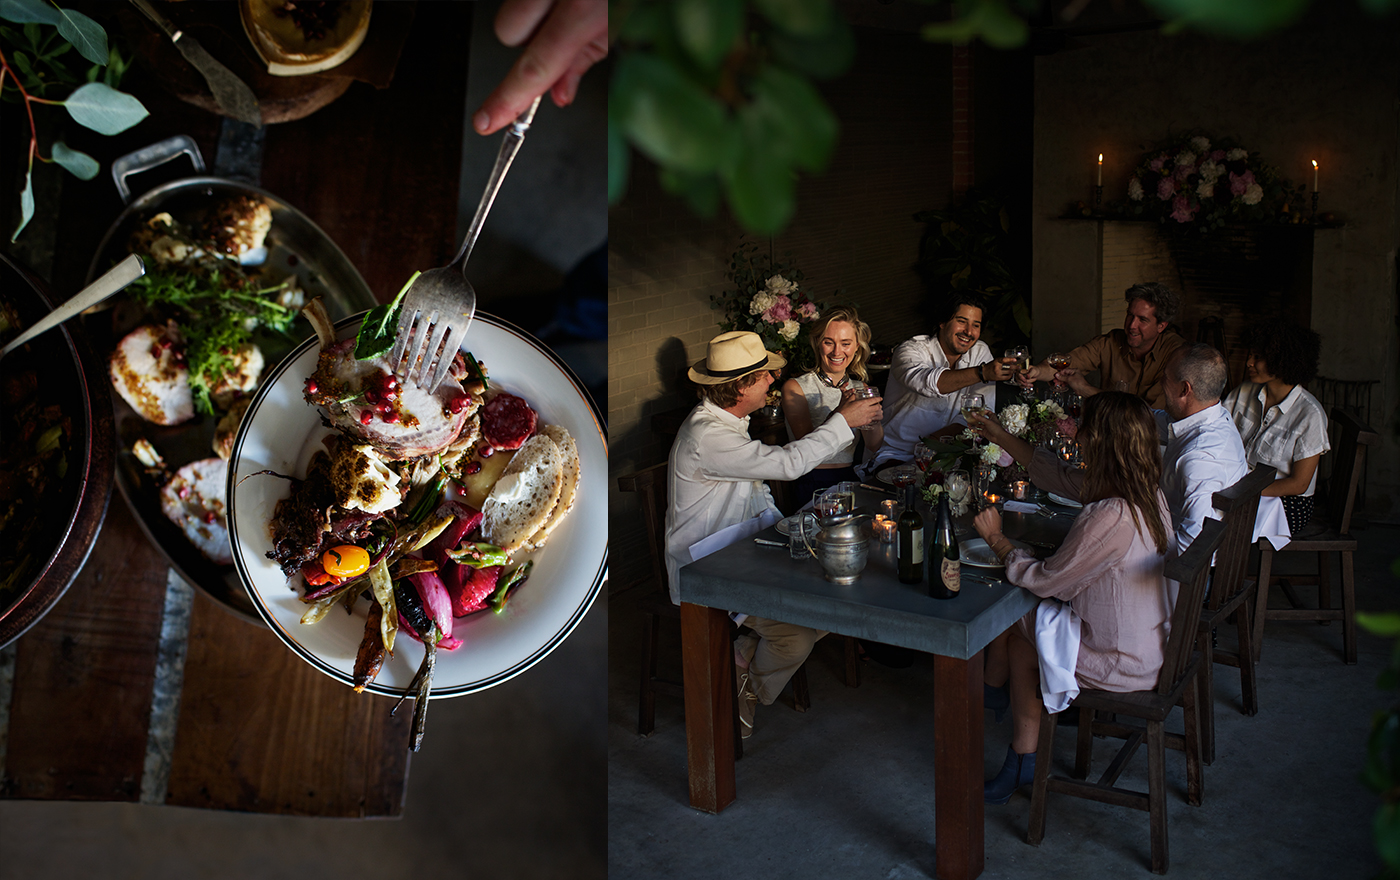 A double picture of an exquisite meal and a group of friends toasting and eating dinner at a table.